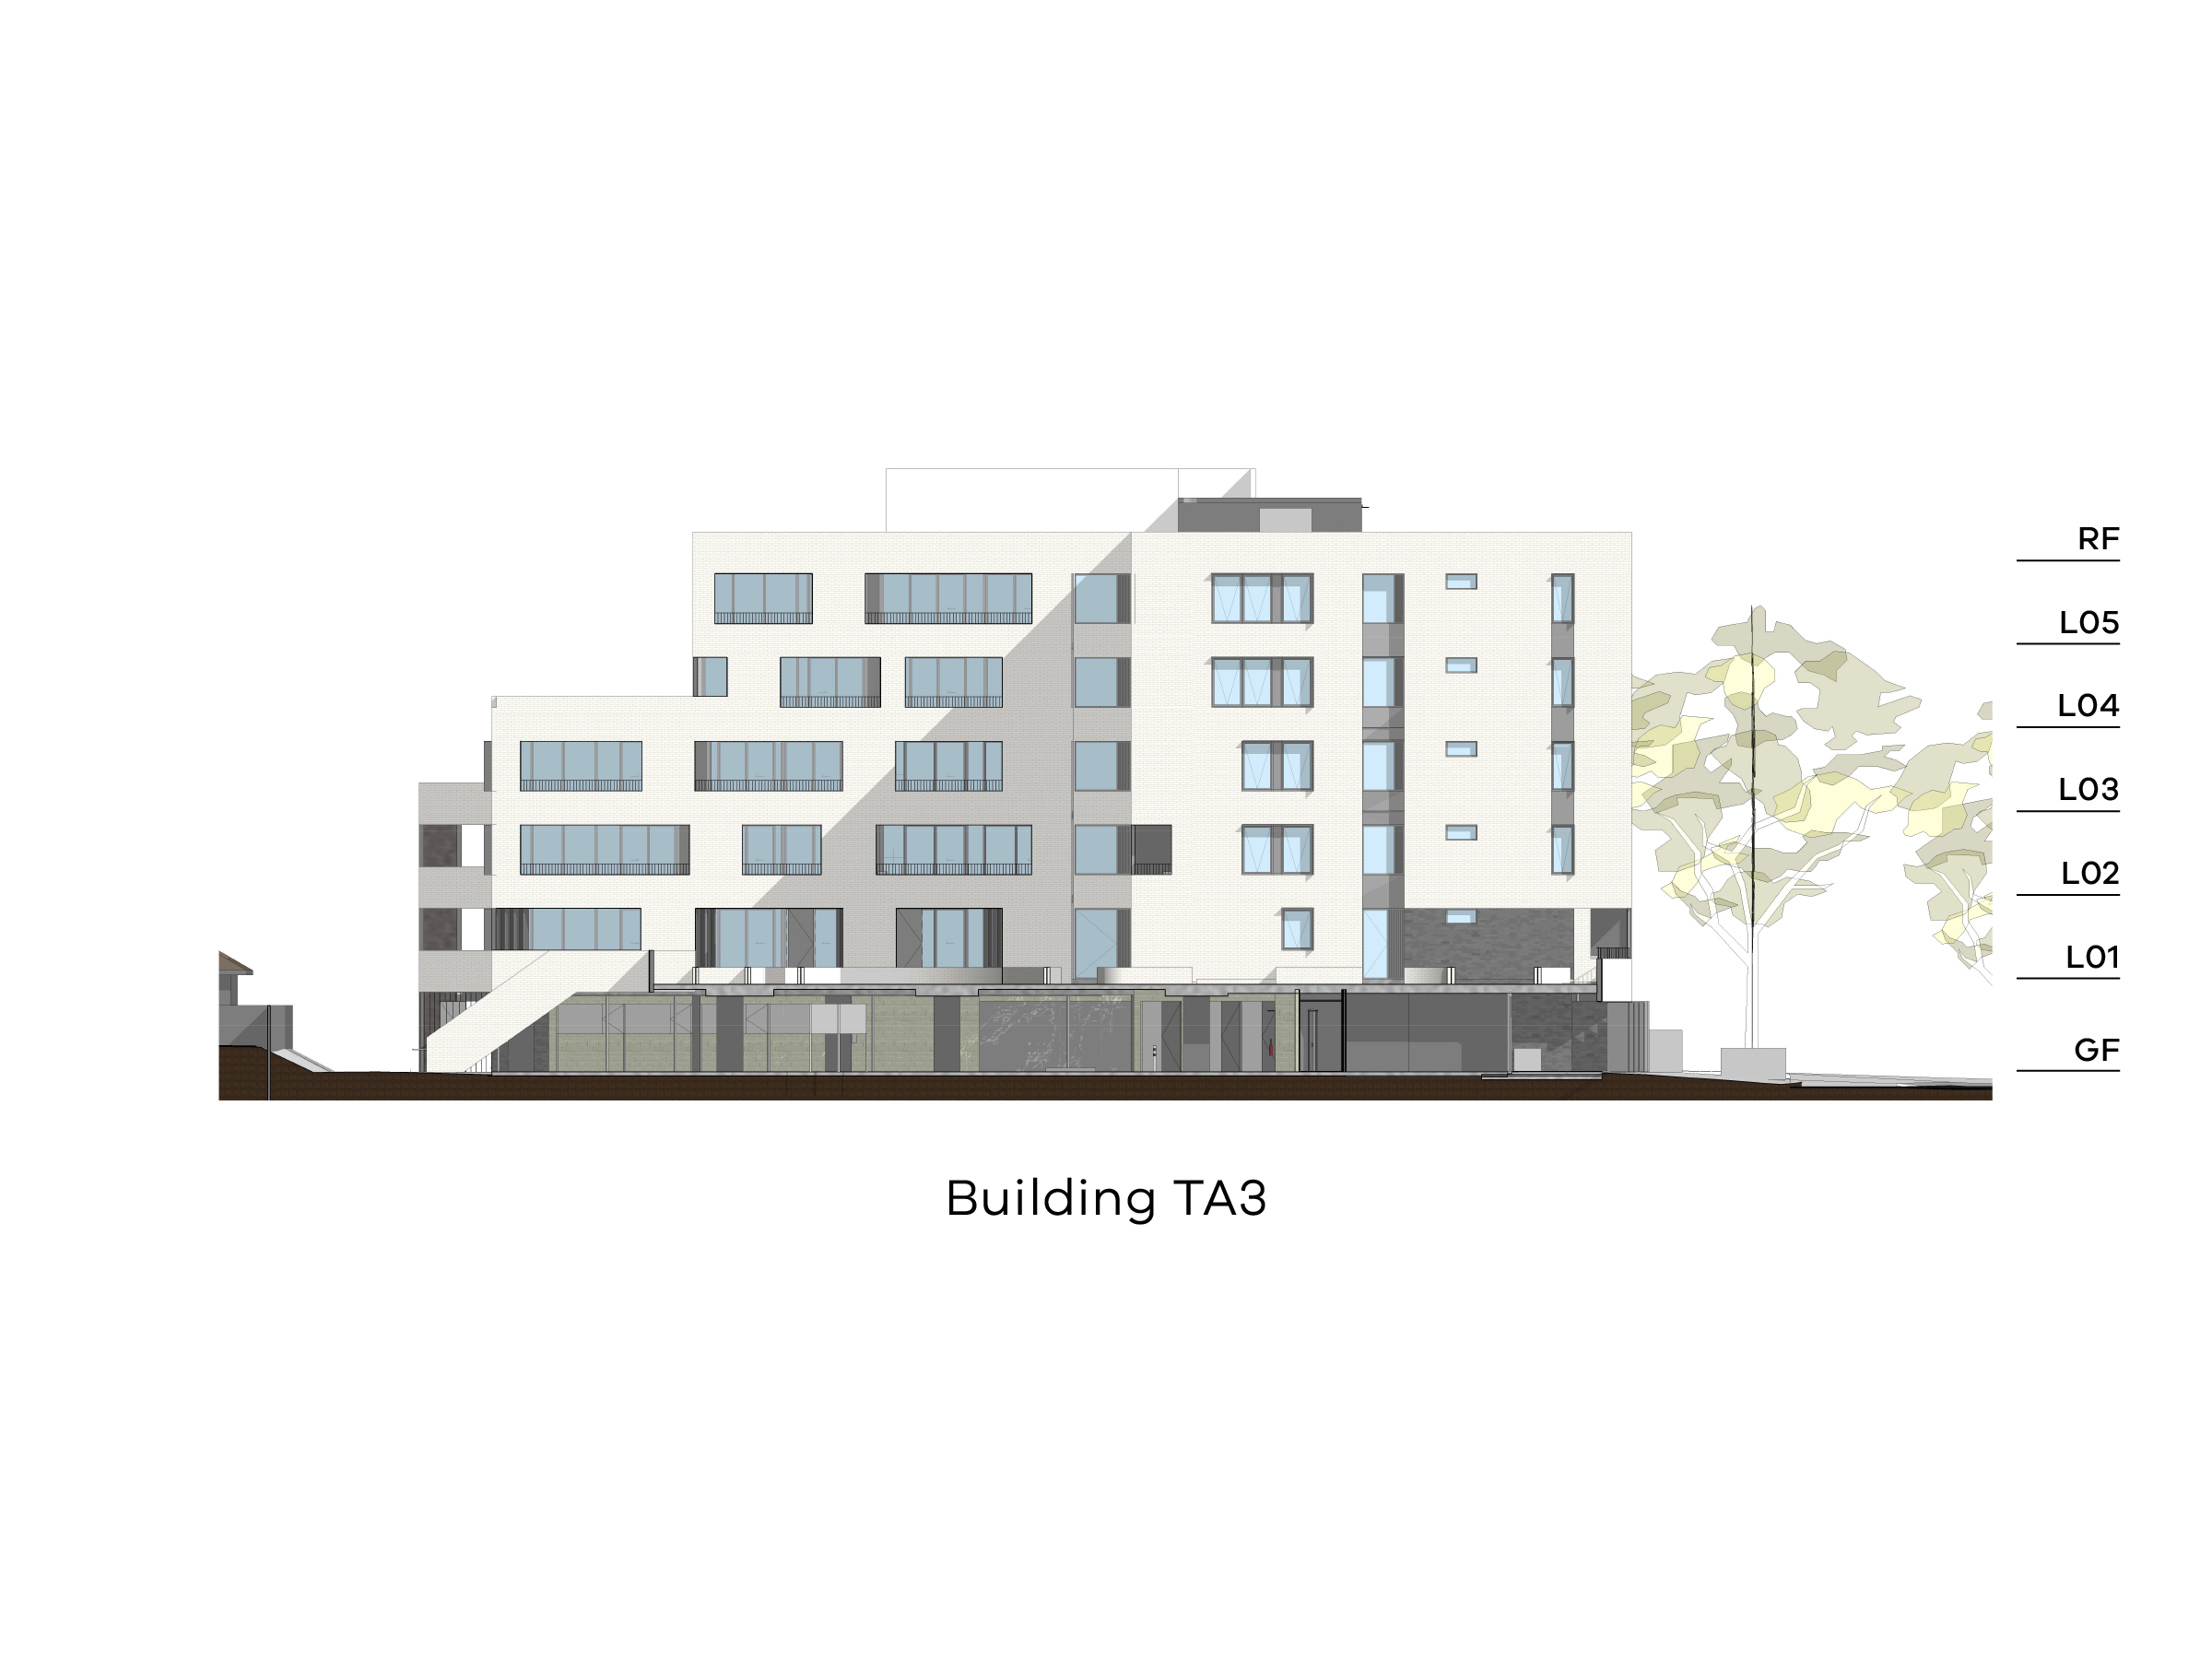 Diagram showing the height of building TA3 as seen through the podium looking south. Building TA3 has different heights with a ground level, level 1-3 and a flat roof on the eastern side and a ground floor, level 1-5 and a flat roof on the western side.